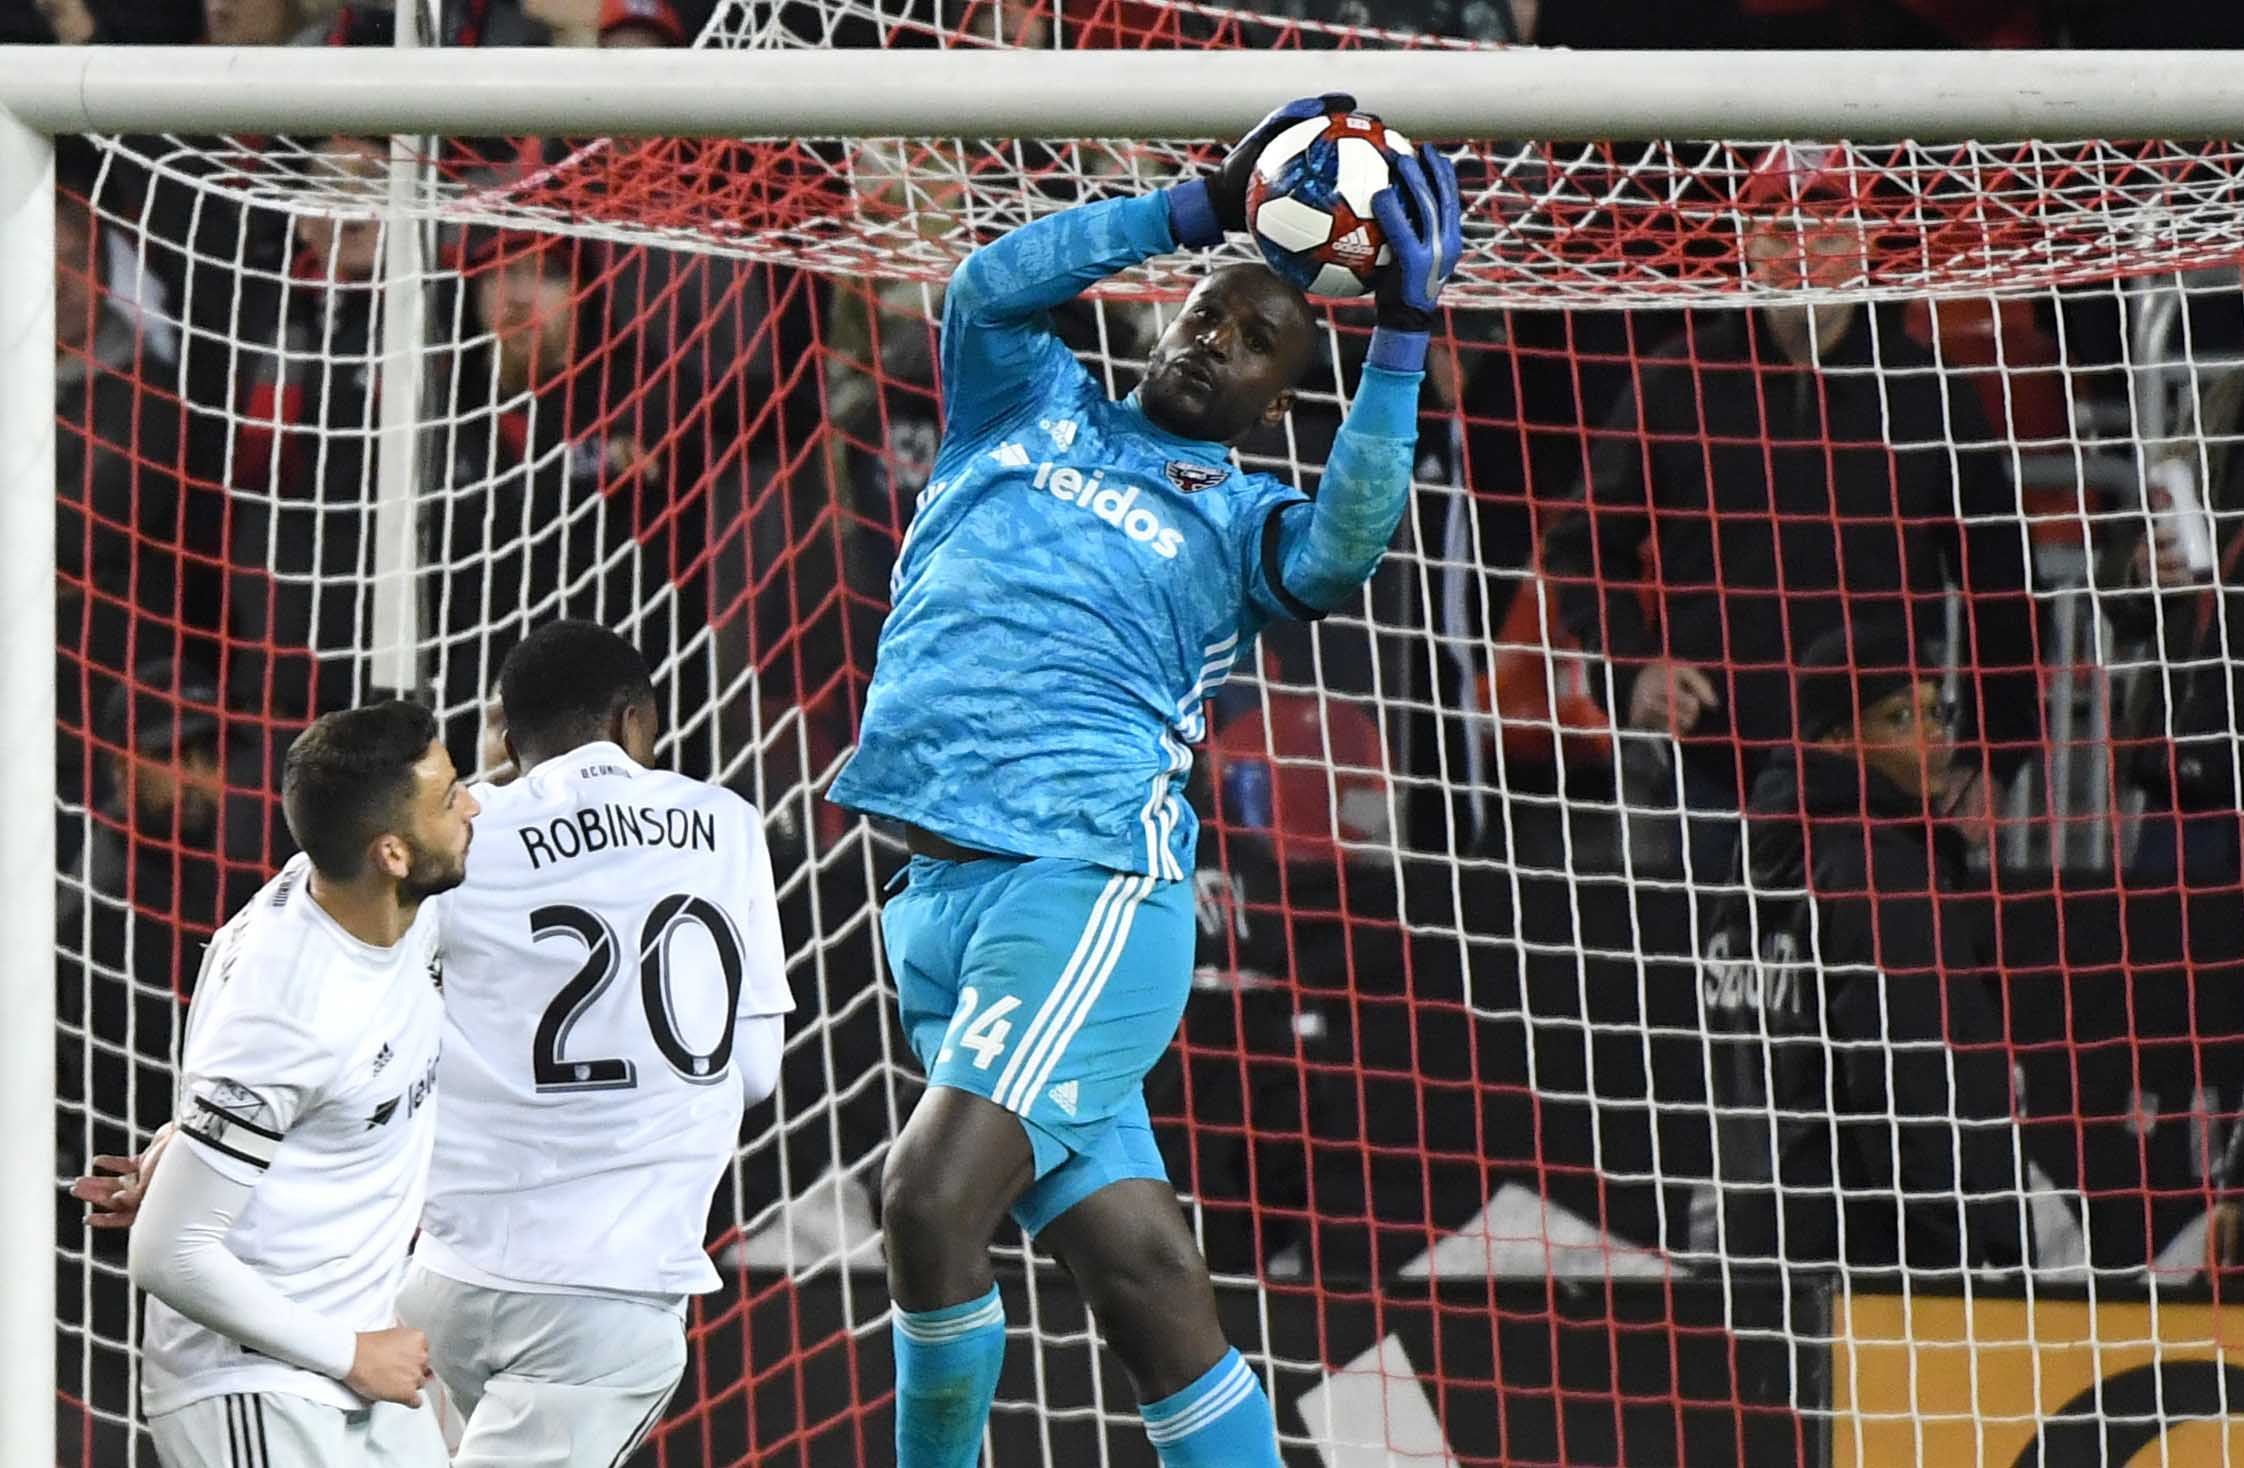 Toronto FC takes 35 shots on goal, but gets stonewalled by tenacious DC United defense